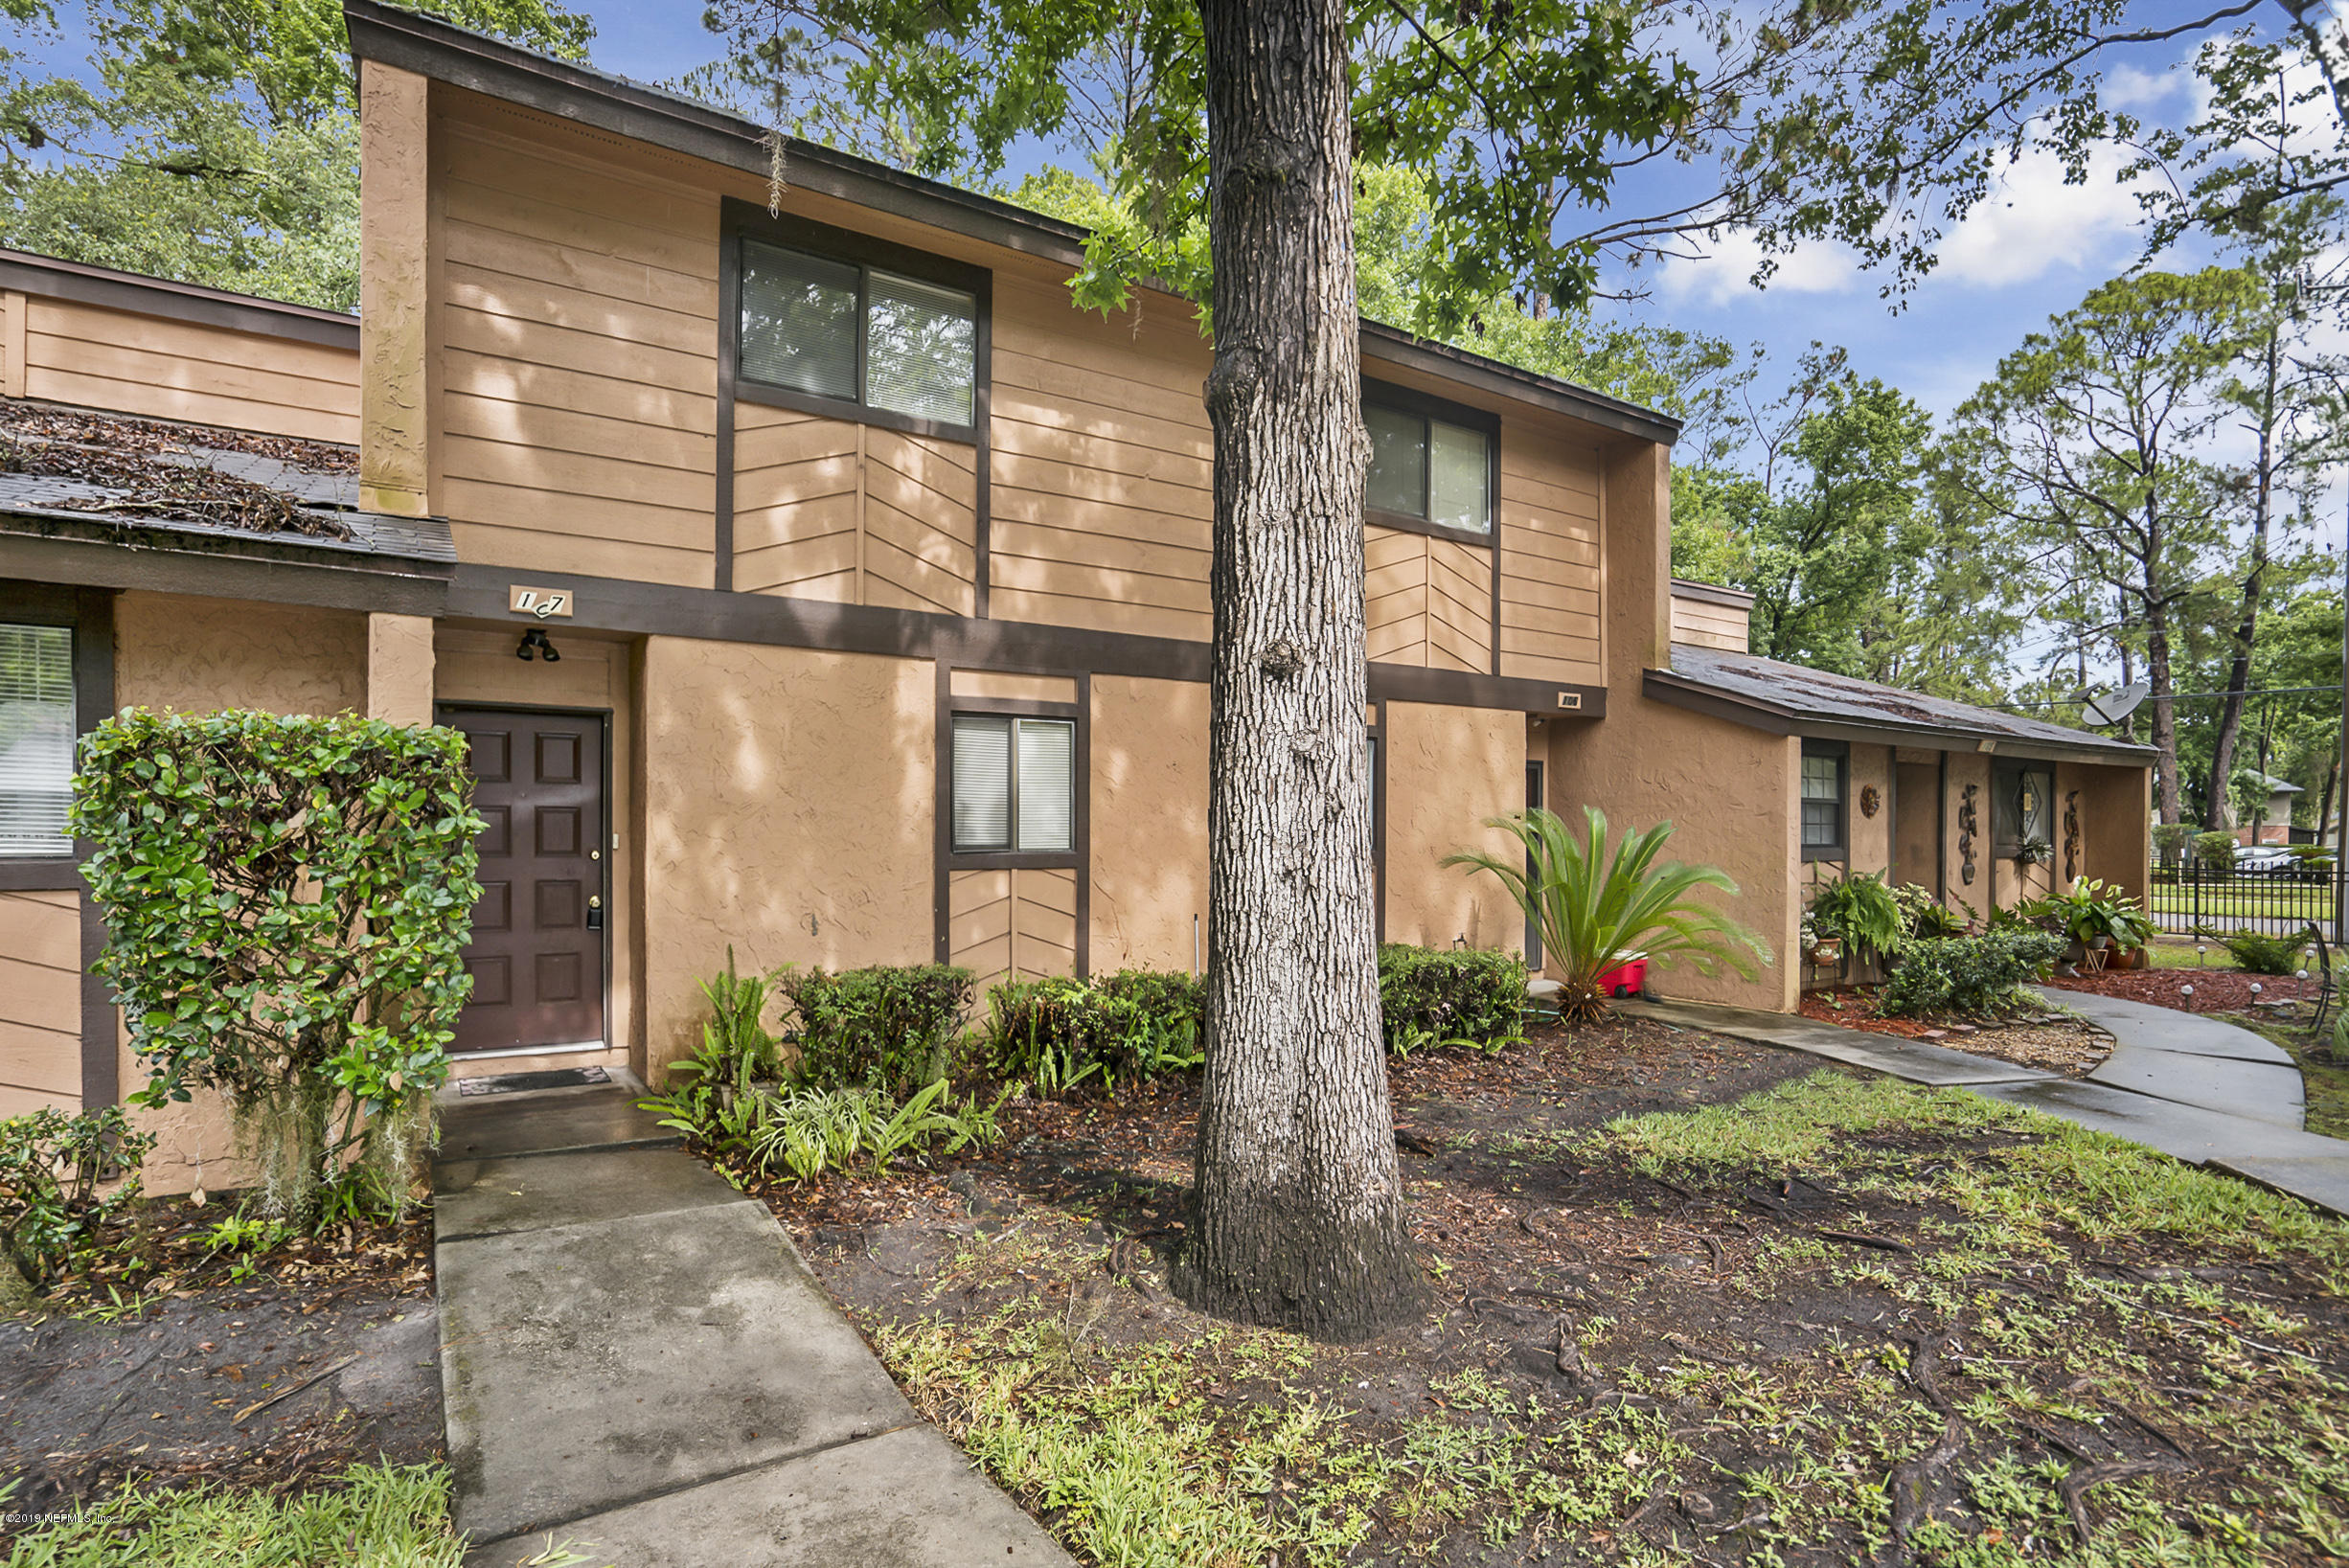 1188 GANO, ORANGE PARK, FLORIDA 32073, 2 Bedrooms Bedrooms, ,2 BathroomsBathrooms,Residential - condos/townhomes,For sale,GANO,1000841